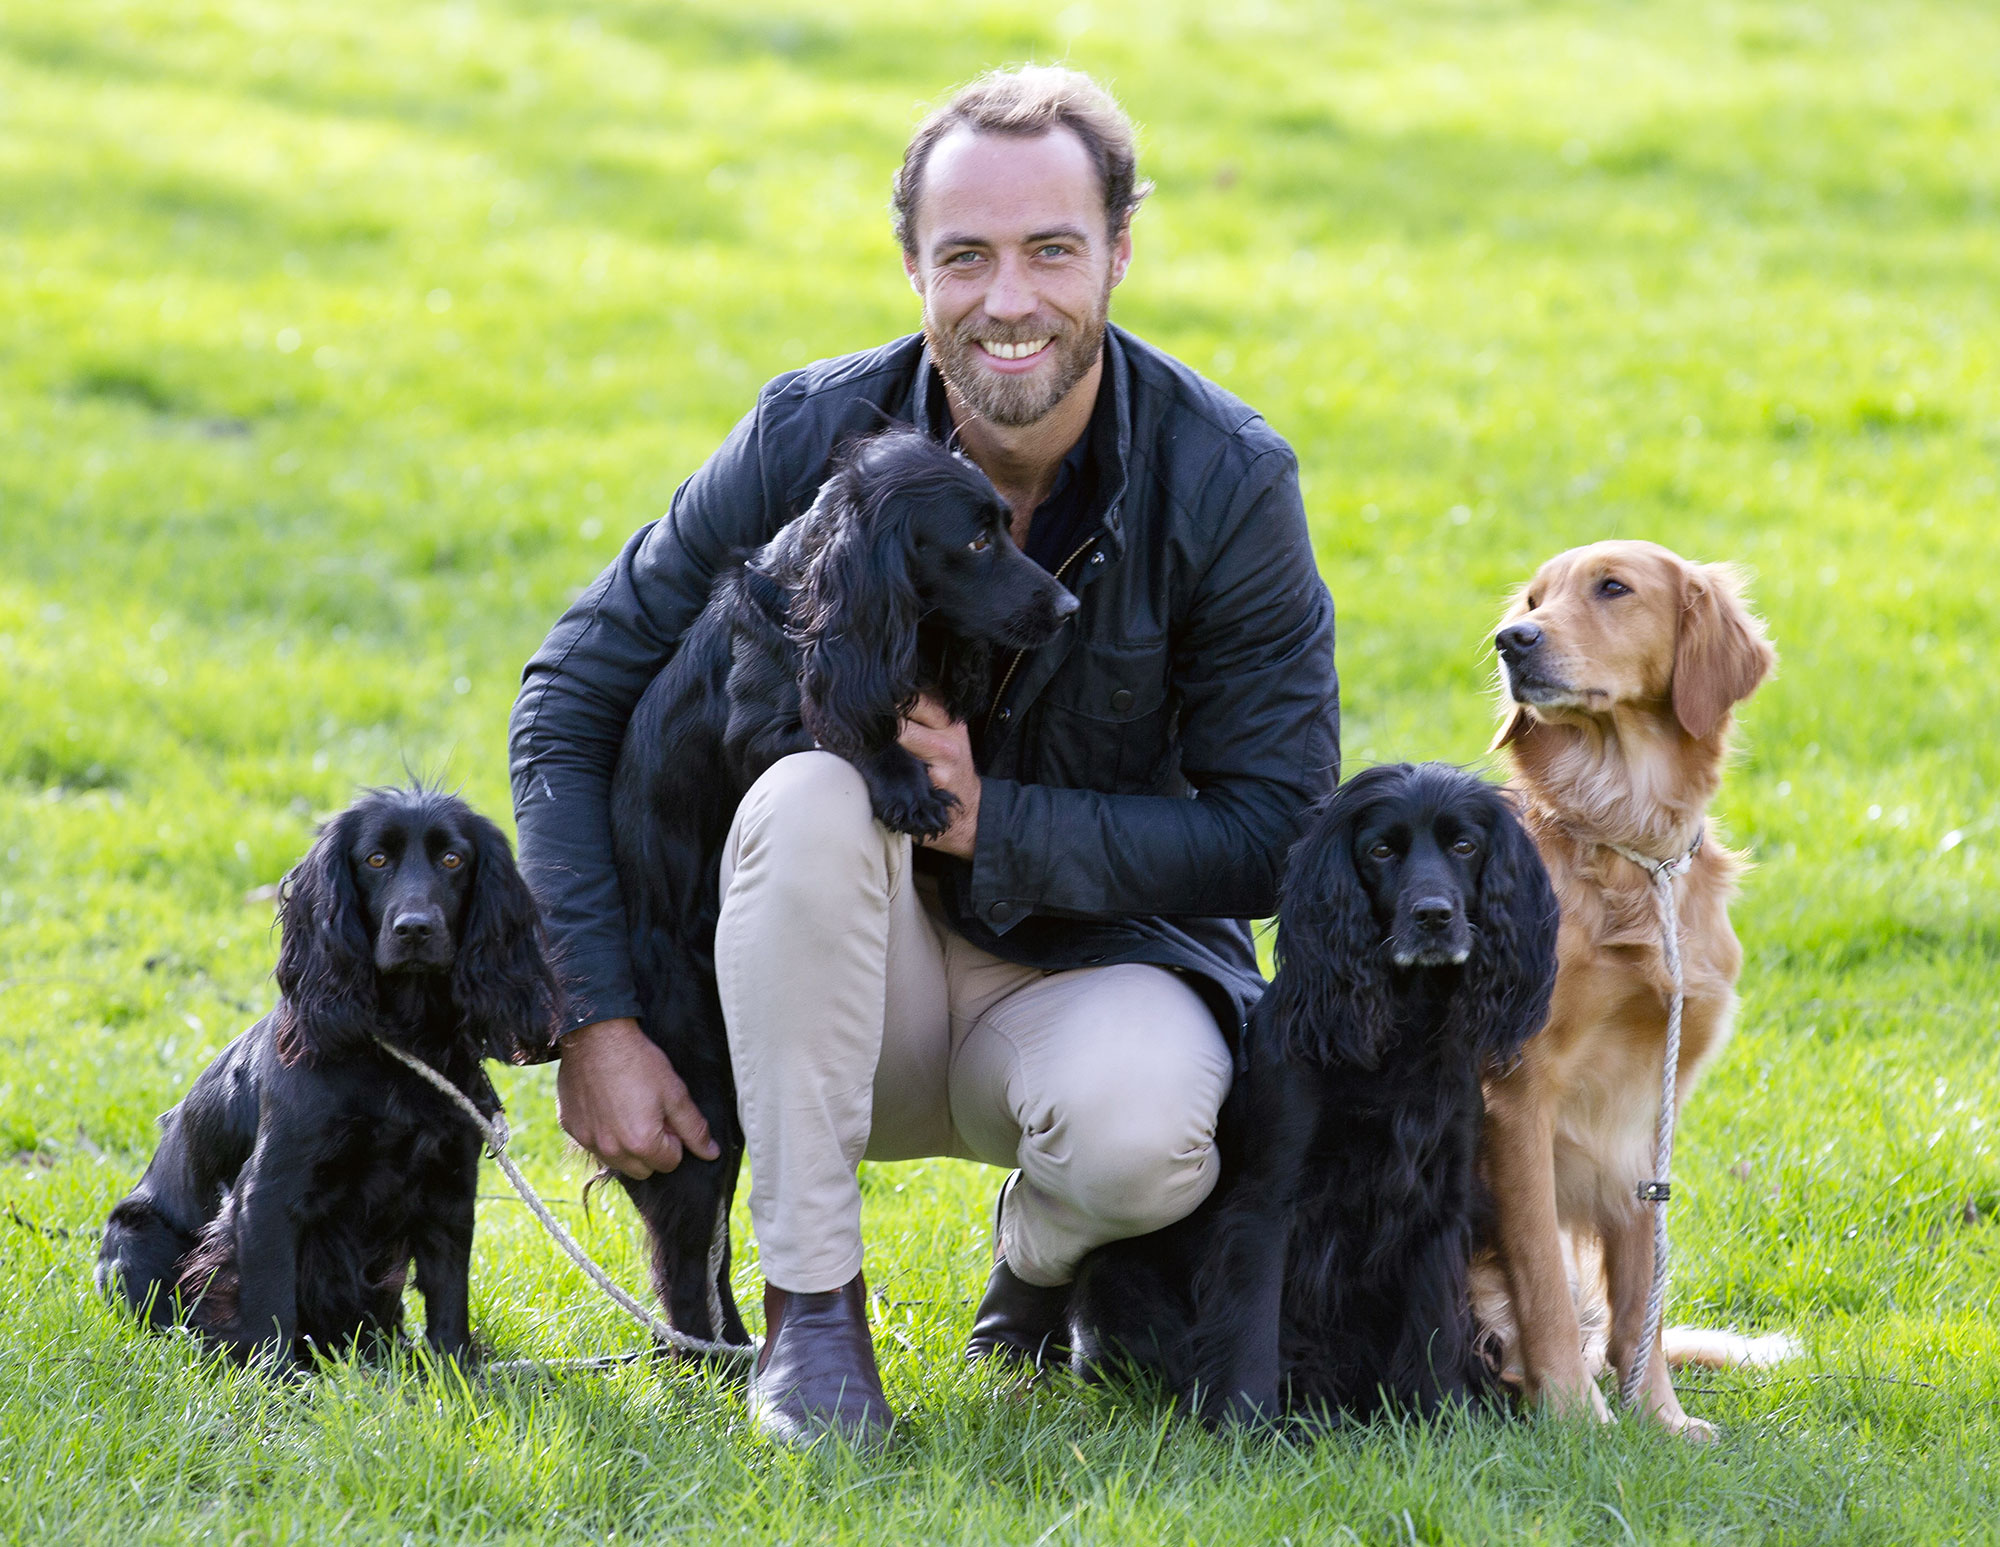 James Middleton Dines With His Beloved Dogs While Social Distancing Amid the Coronavirus Outbreak